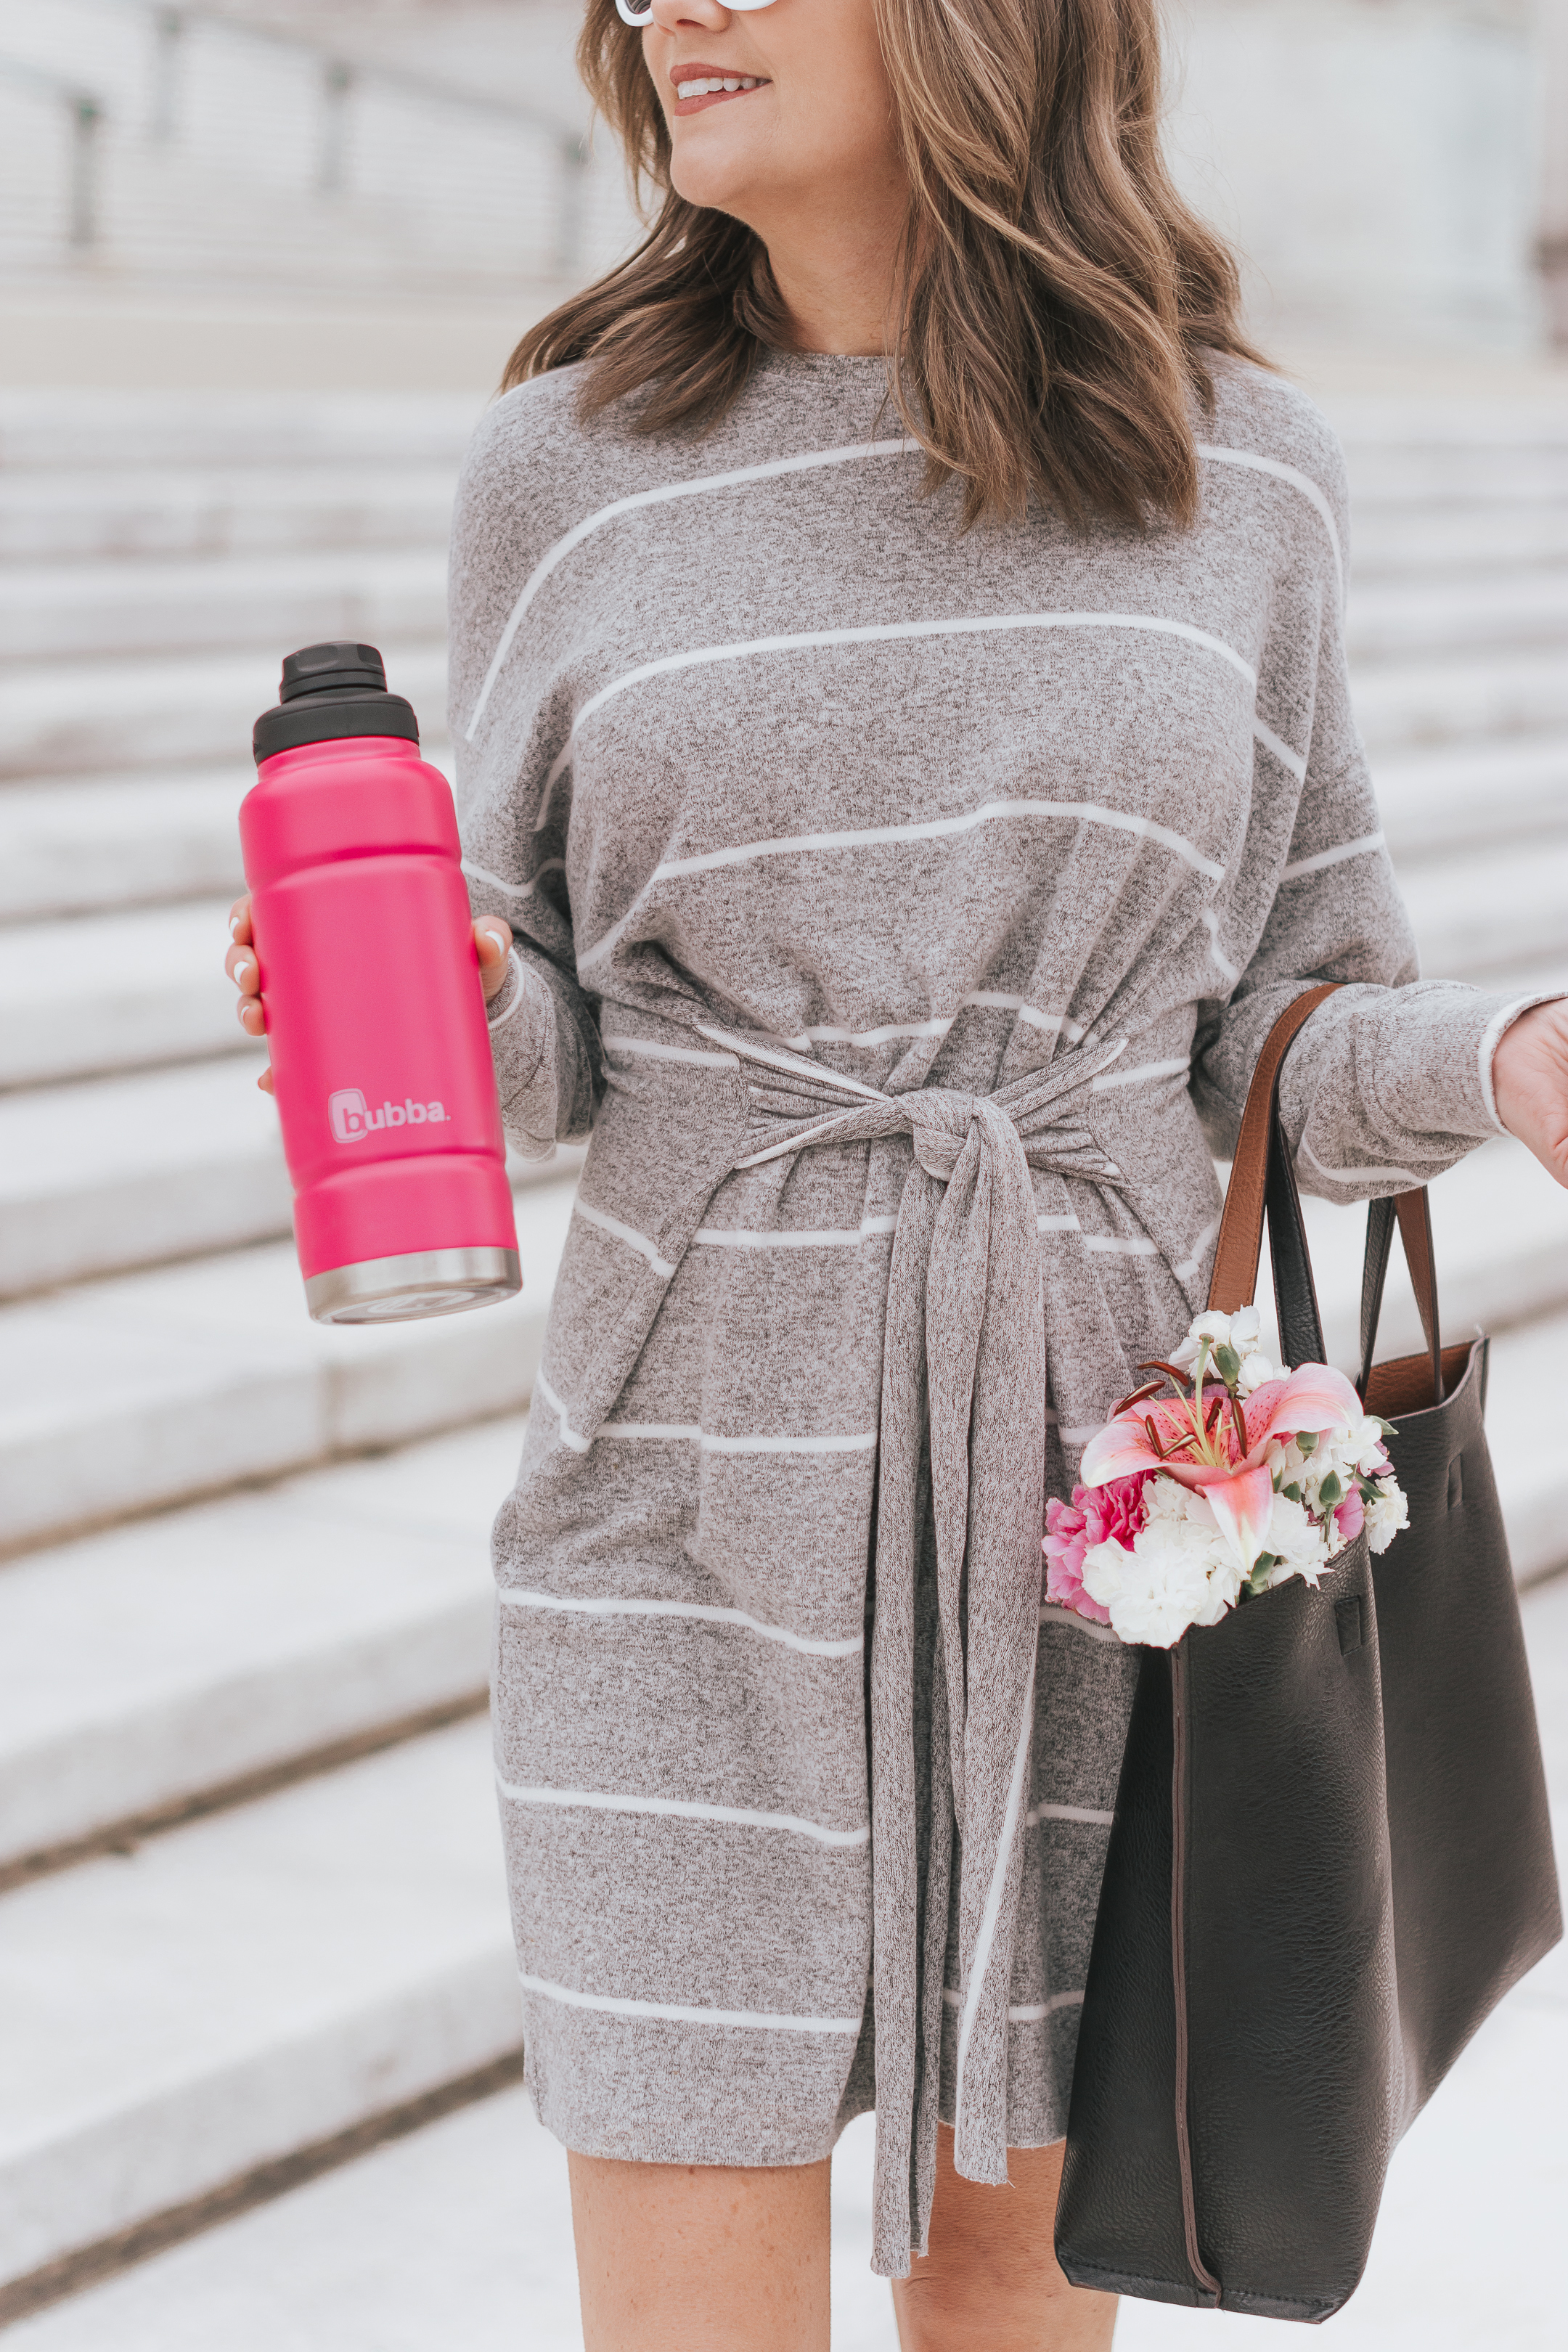 bubba water bottle, what to do in chicago in the summer, staycation, grey tie front mini dress, staying hydrated in the summer in chicago